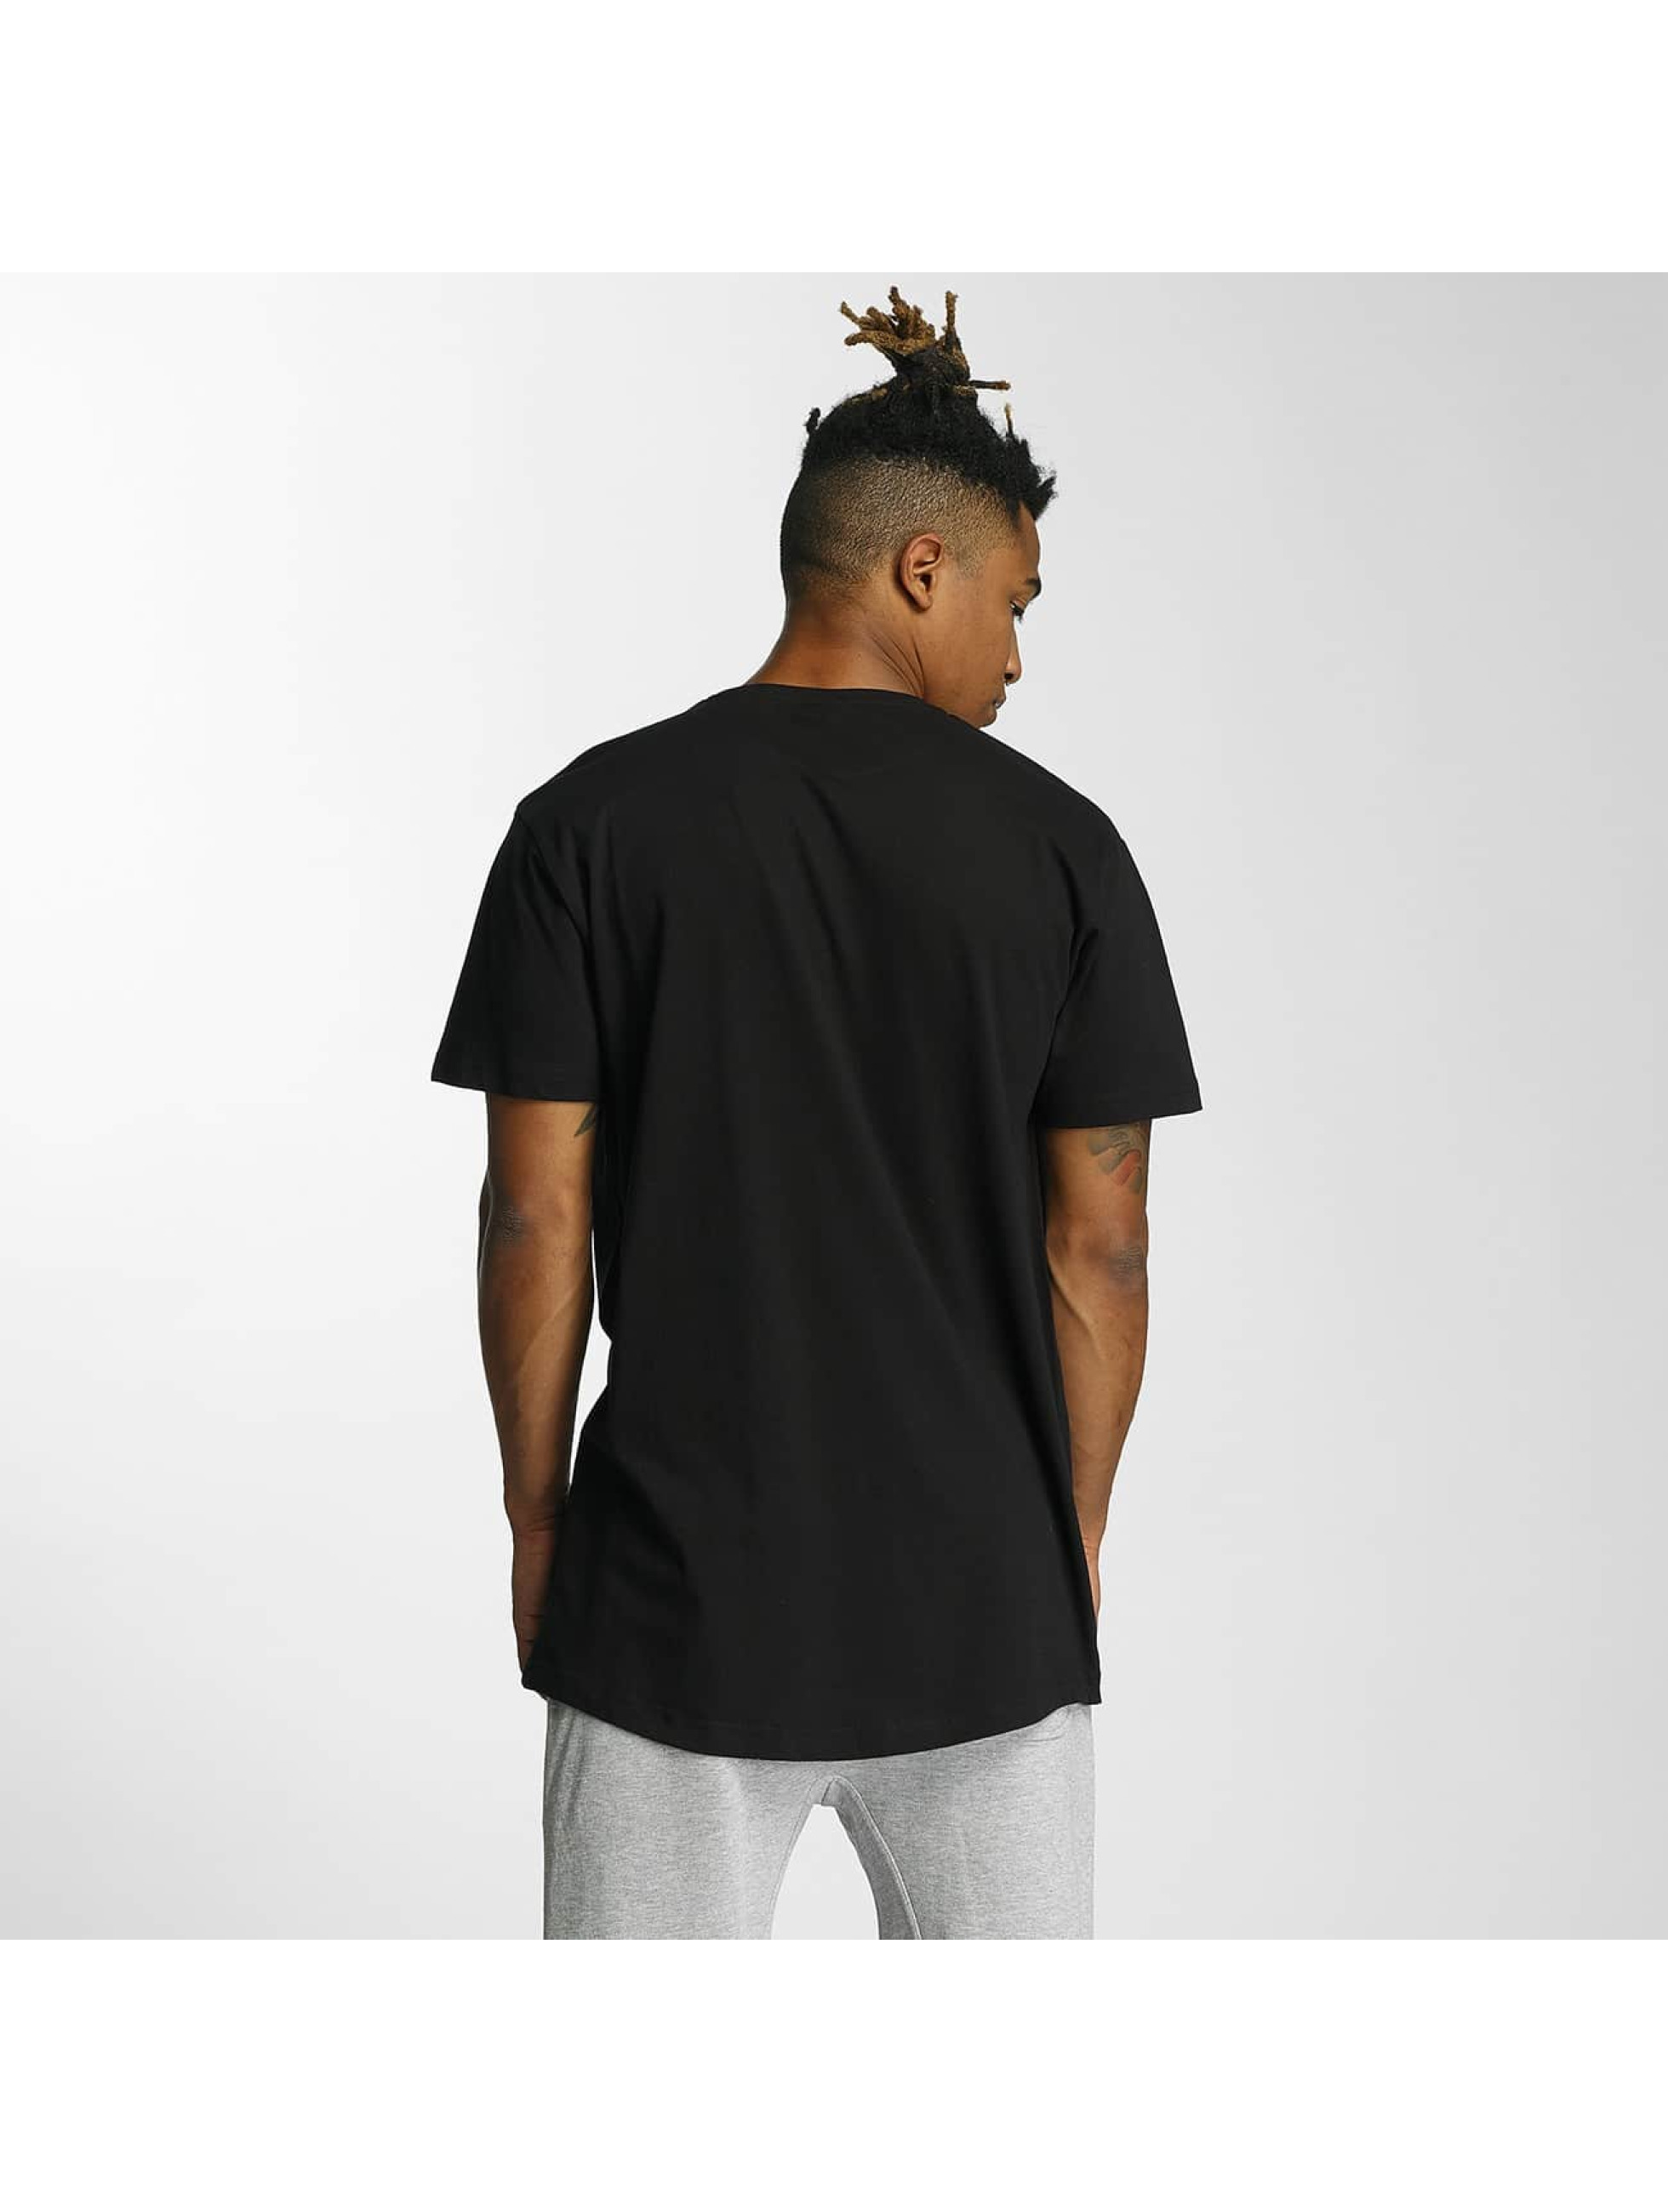 Kingin T-shirt KNGN nero